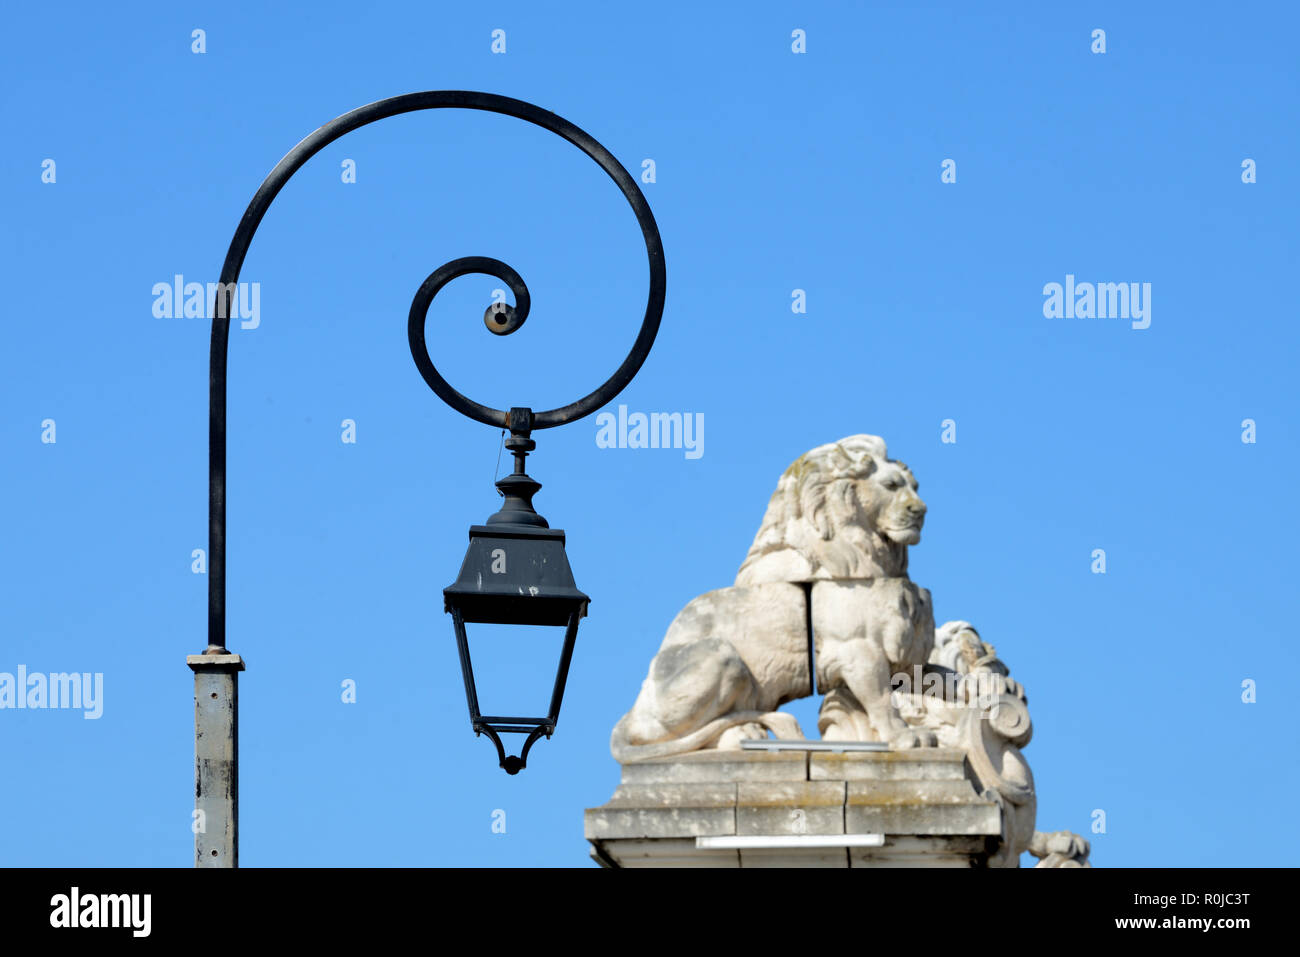 Contemporary Street Lights or Lamps and Carved Stone Lions Atop Columns or Former Suspension Bridge across River Rhône at Arles Provence France - Stock Image